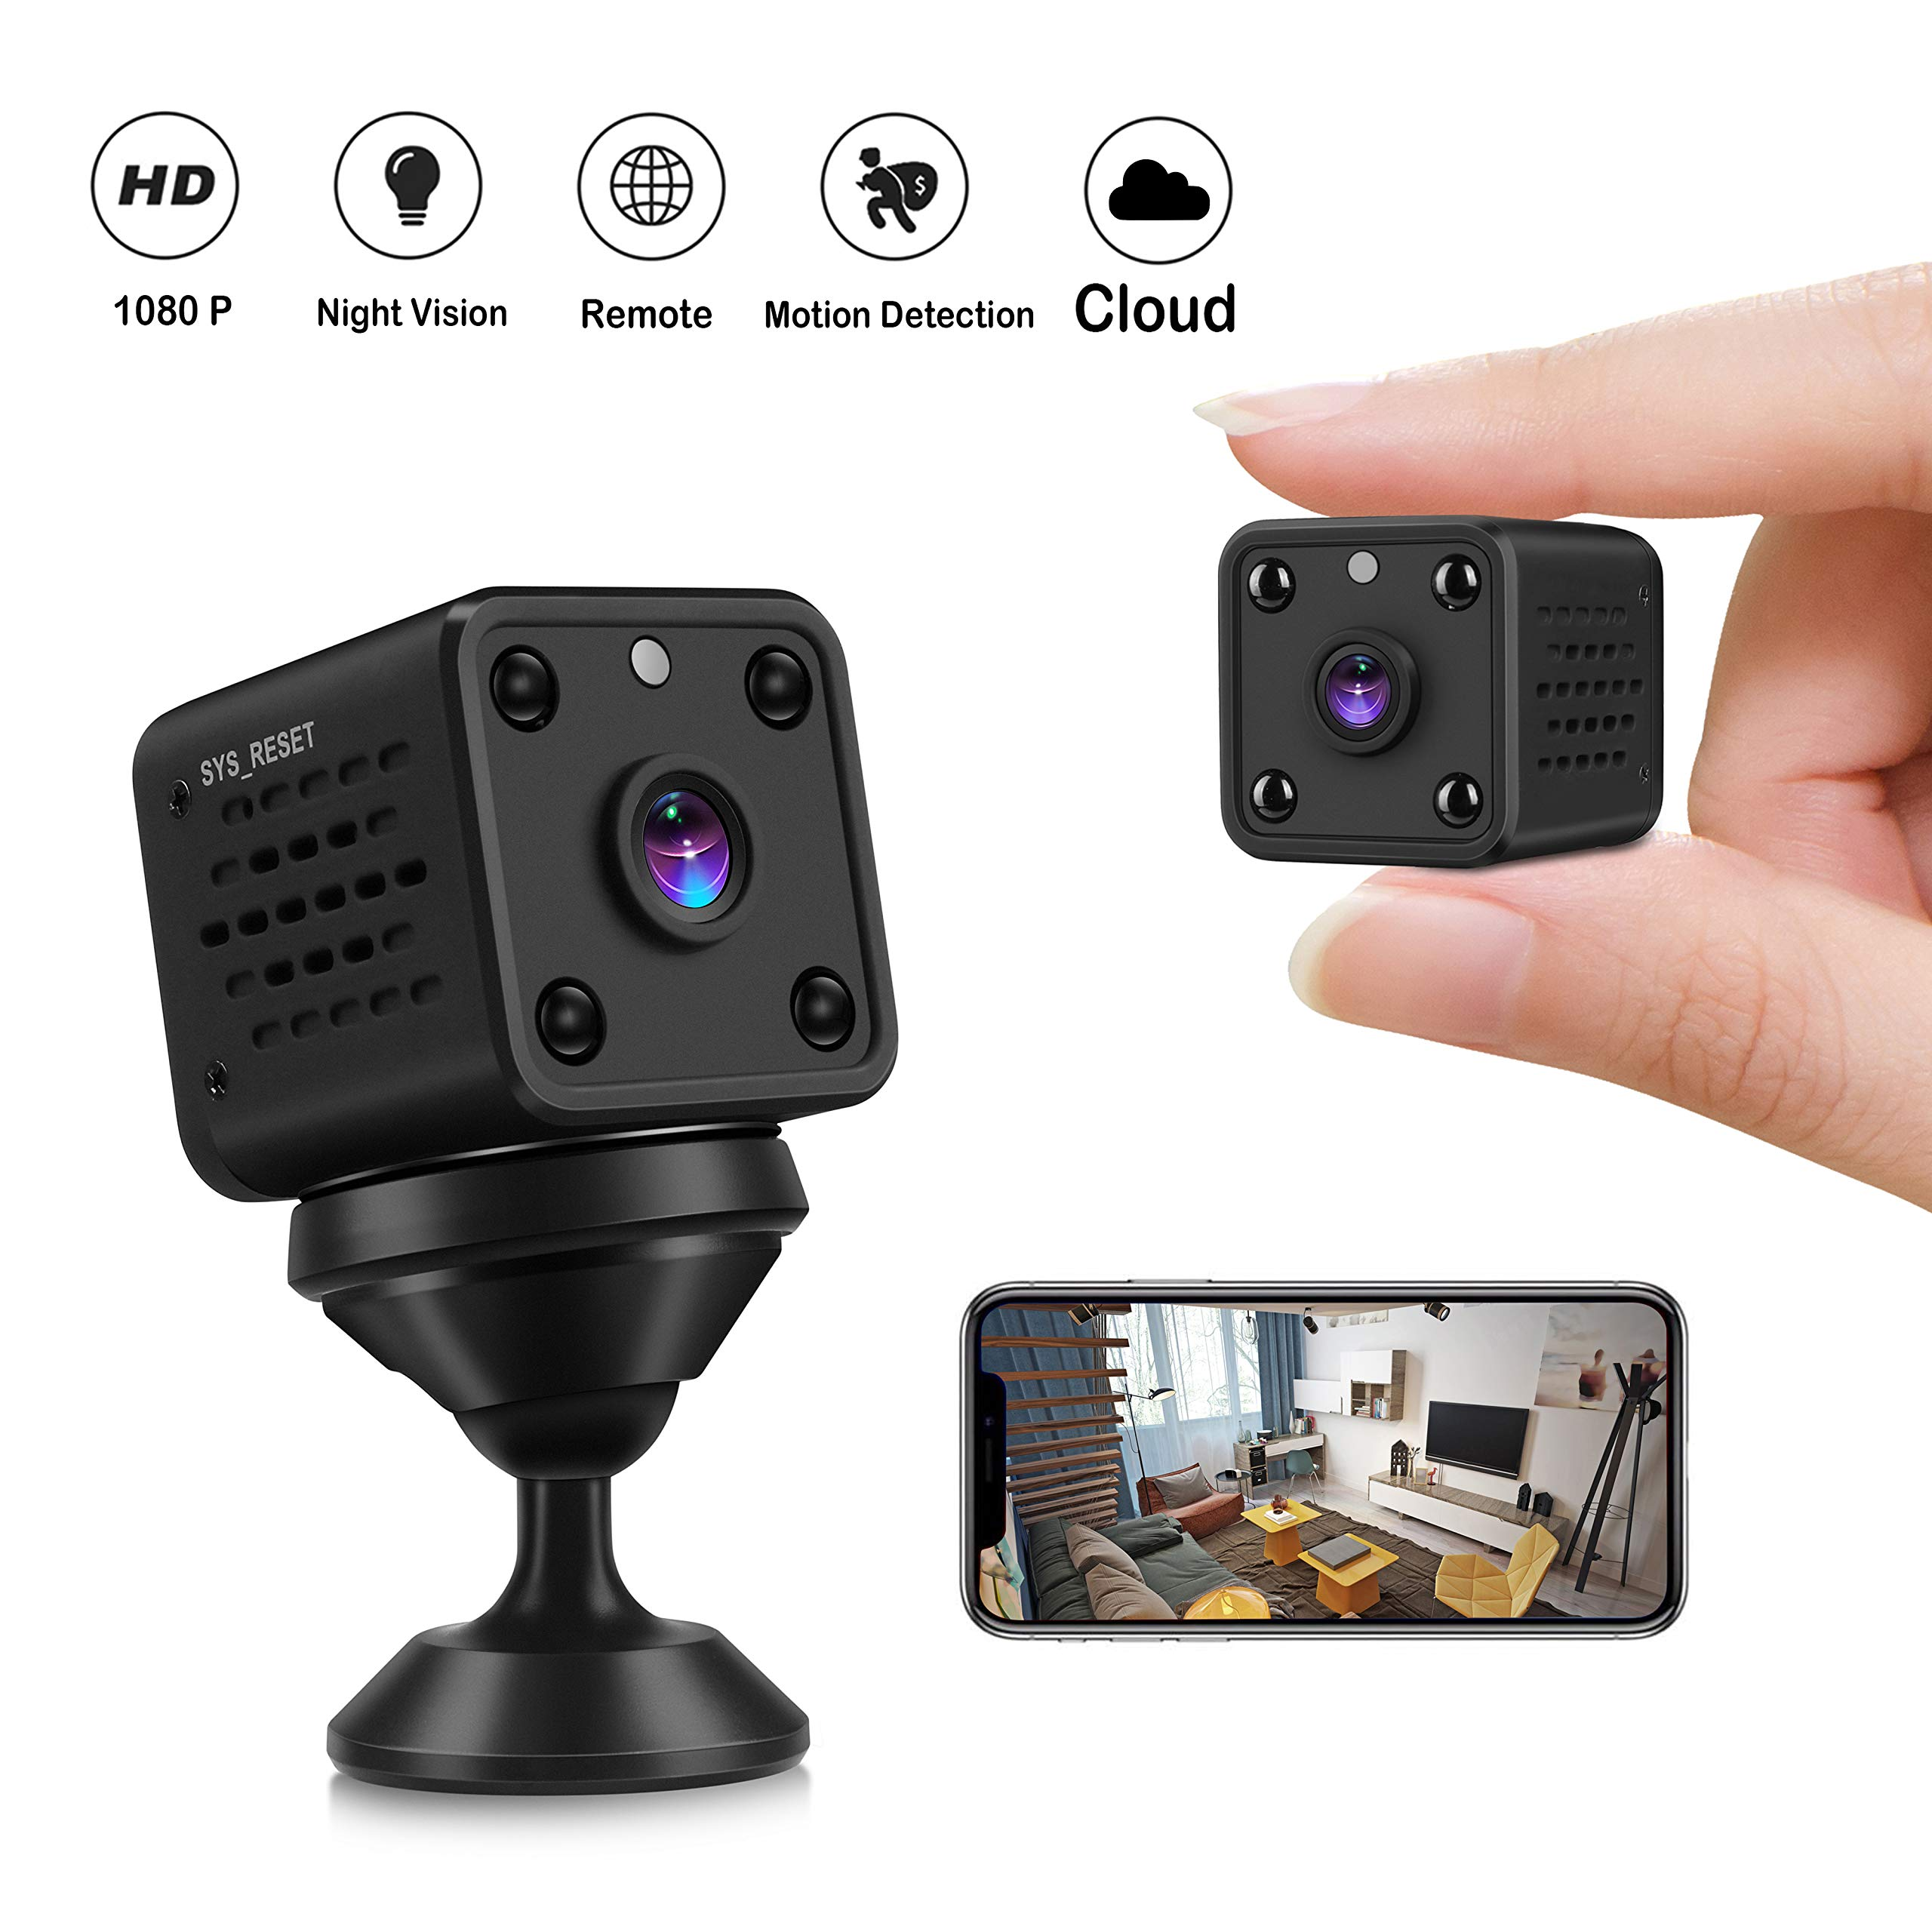 Mini Camera - CUSFLYX Tiny Portable 1080P WiFi Full HD Nanny Pet Office Sports Garage Home Surveillance Camera Auto IR Night Vision 150° Wide Angle Motion Detection Remote Video for Android and iOS by CUSFLYX